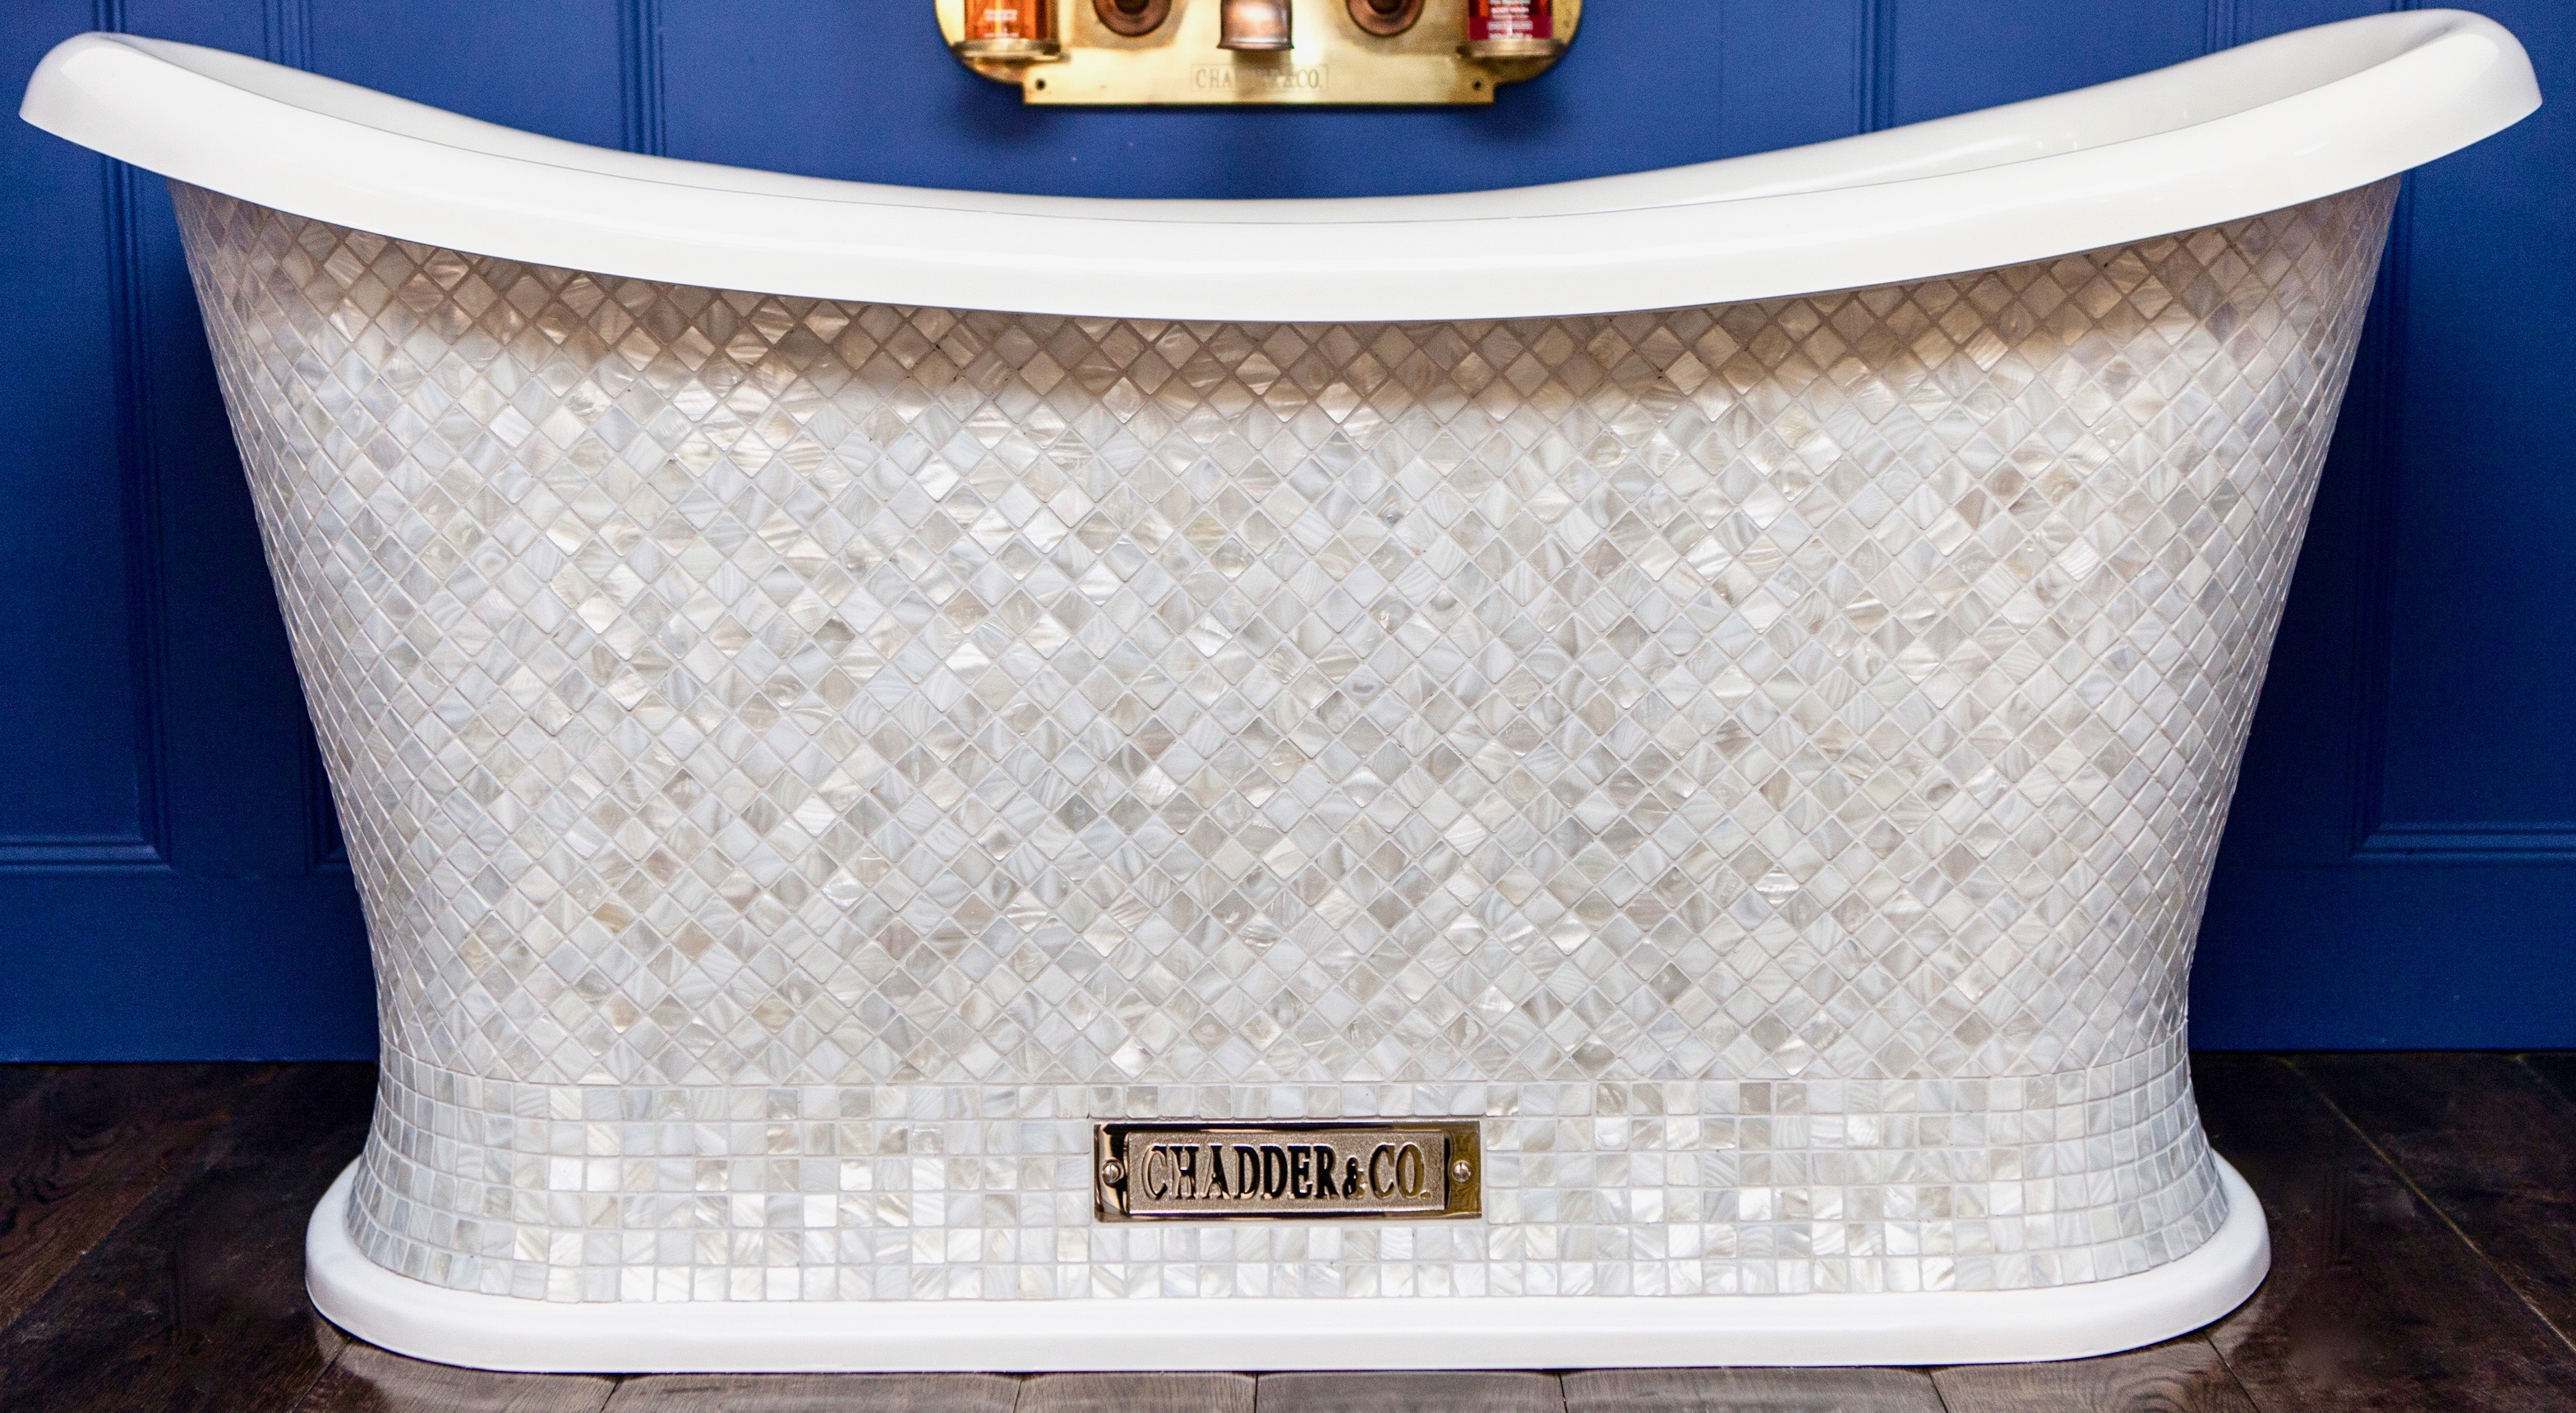 mother of pearl mosaic chariot bath free standing bath